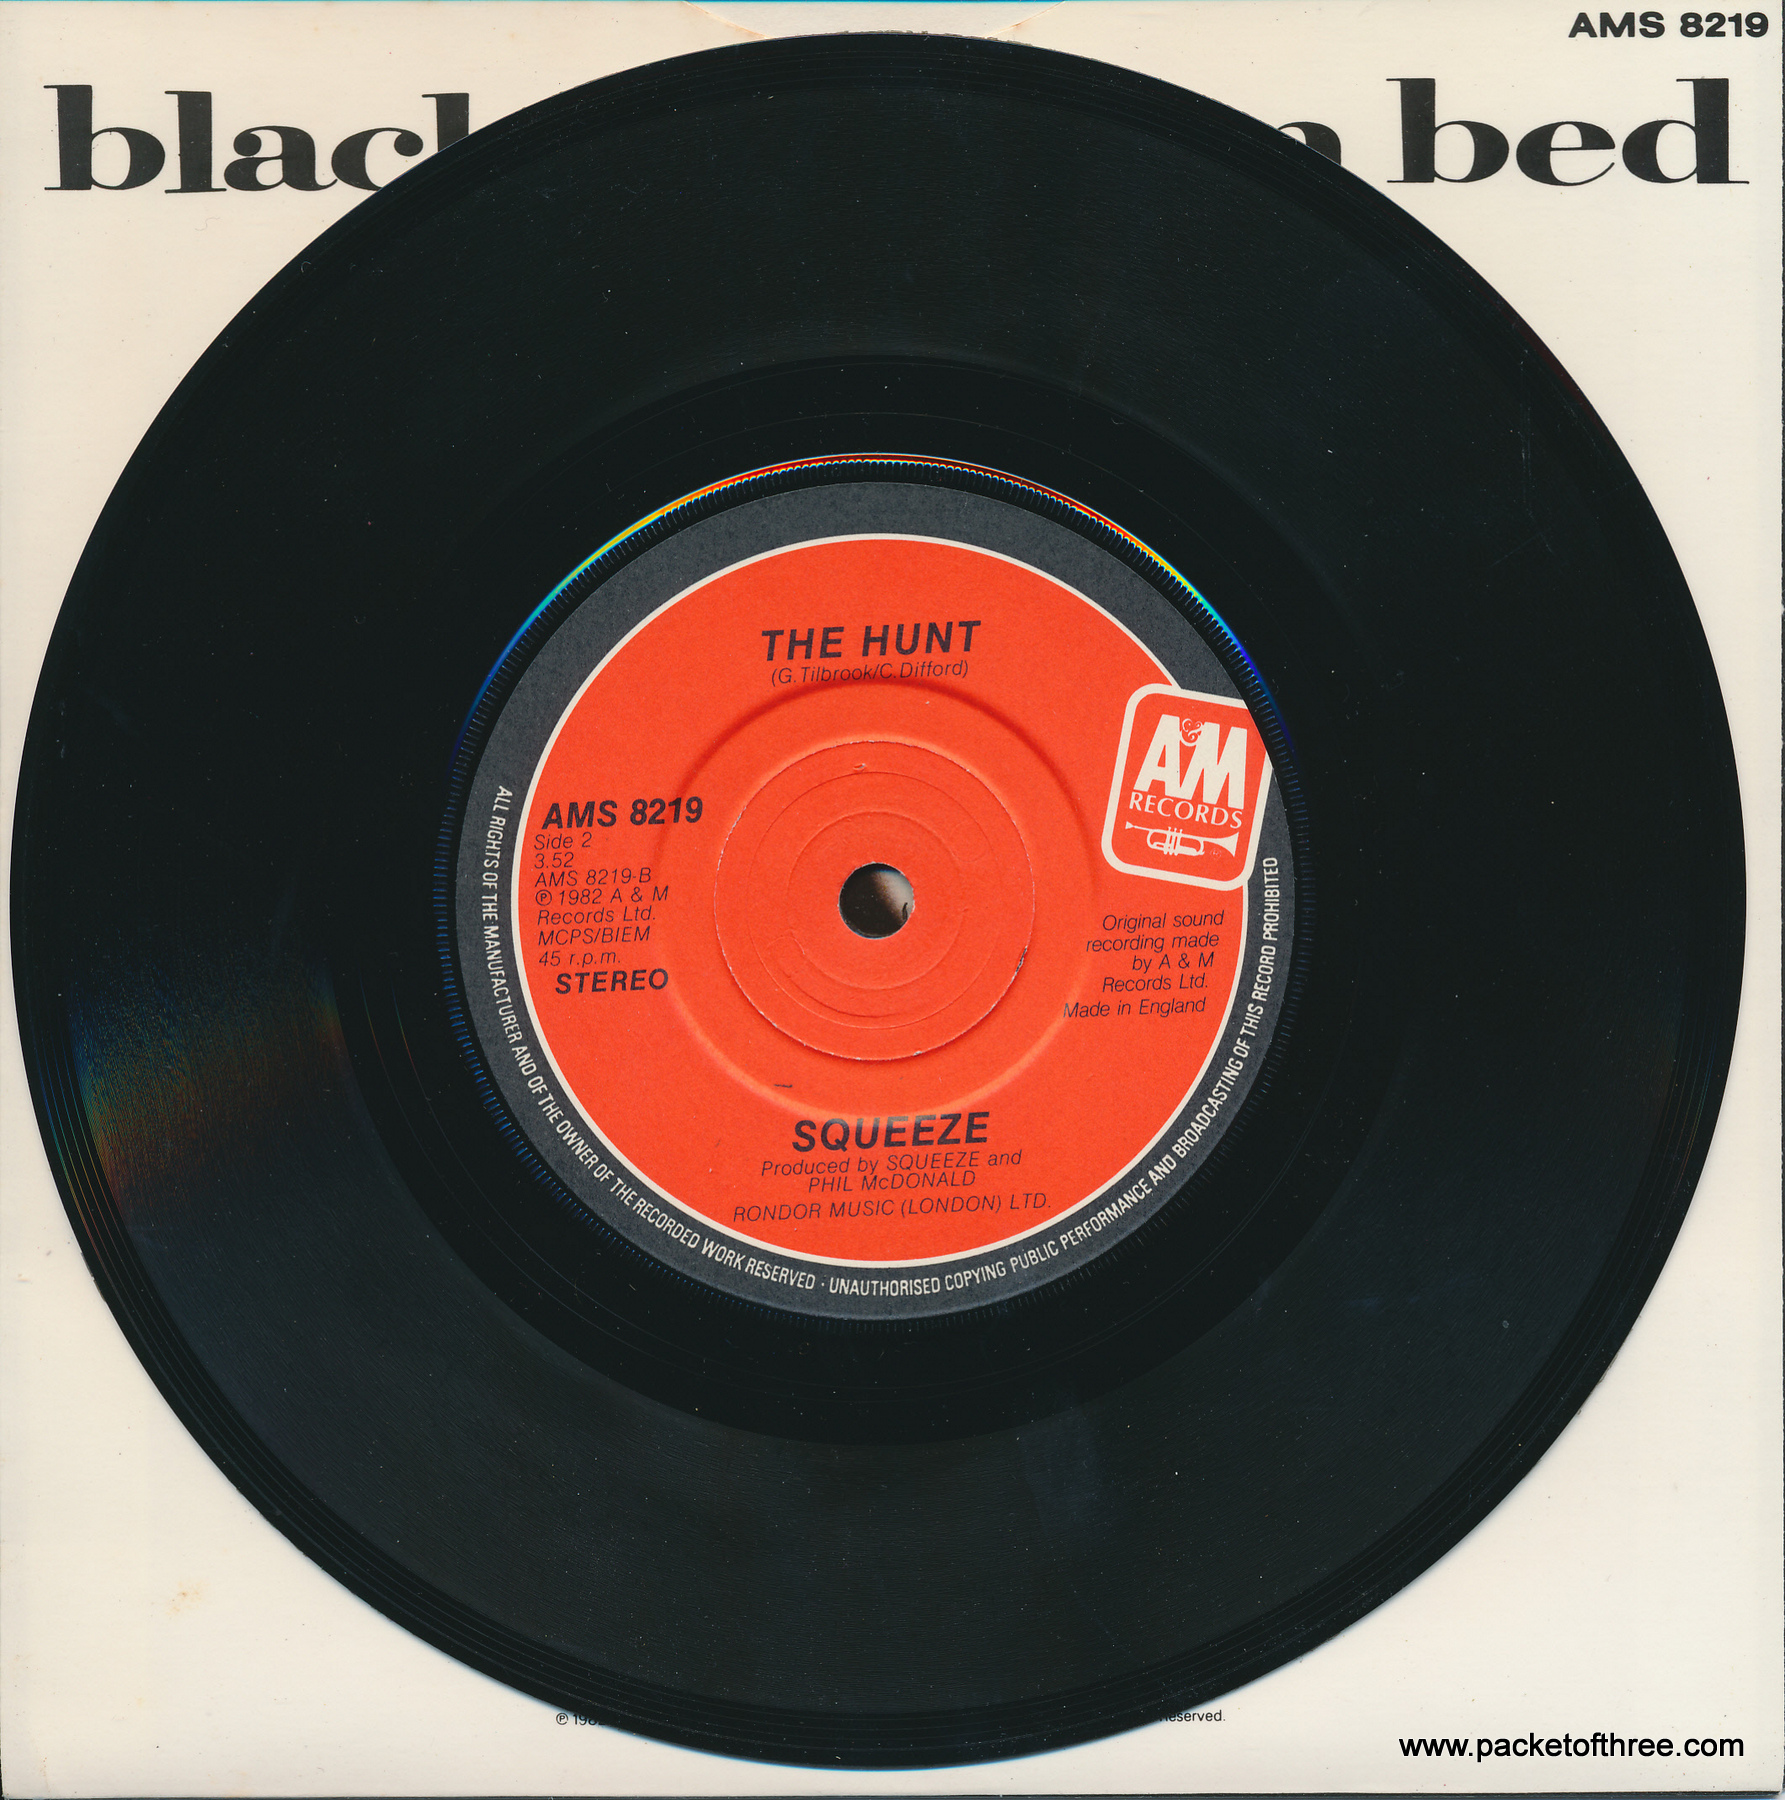 Song Black Coffee In Bed By Squeeze